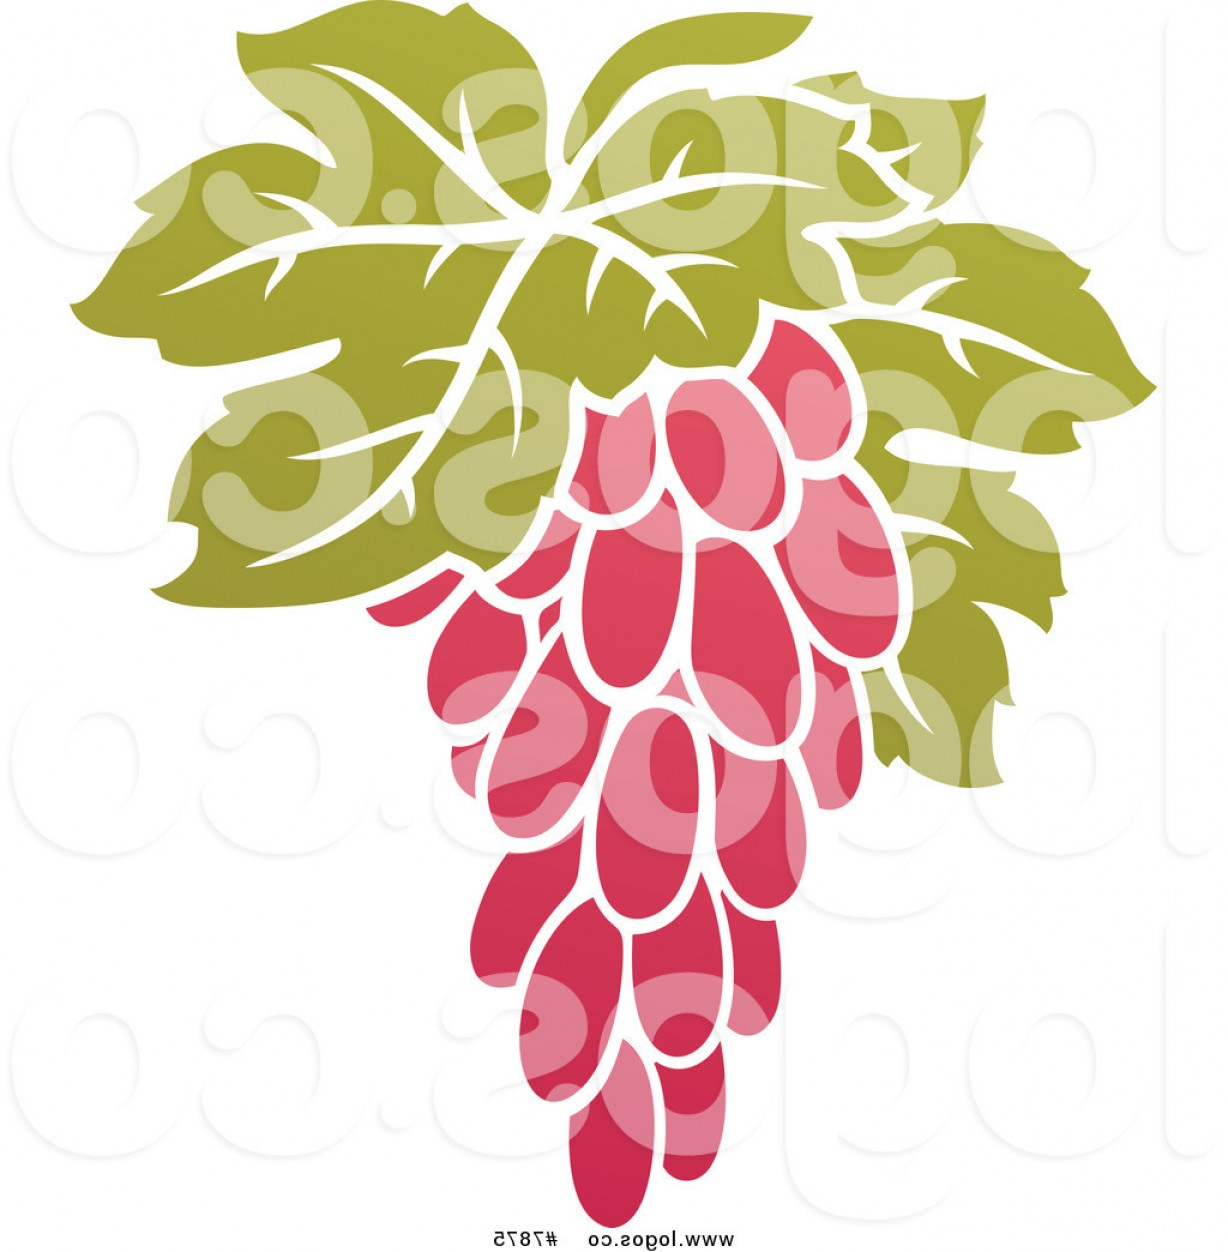 Grapes Clip Art Vector: Royalty Free Vector Of A Purple Grapes And Leaves Winery Logo By Elena